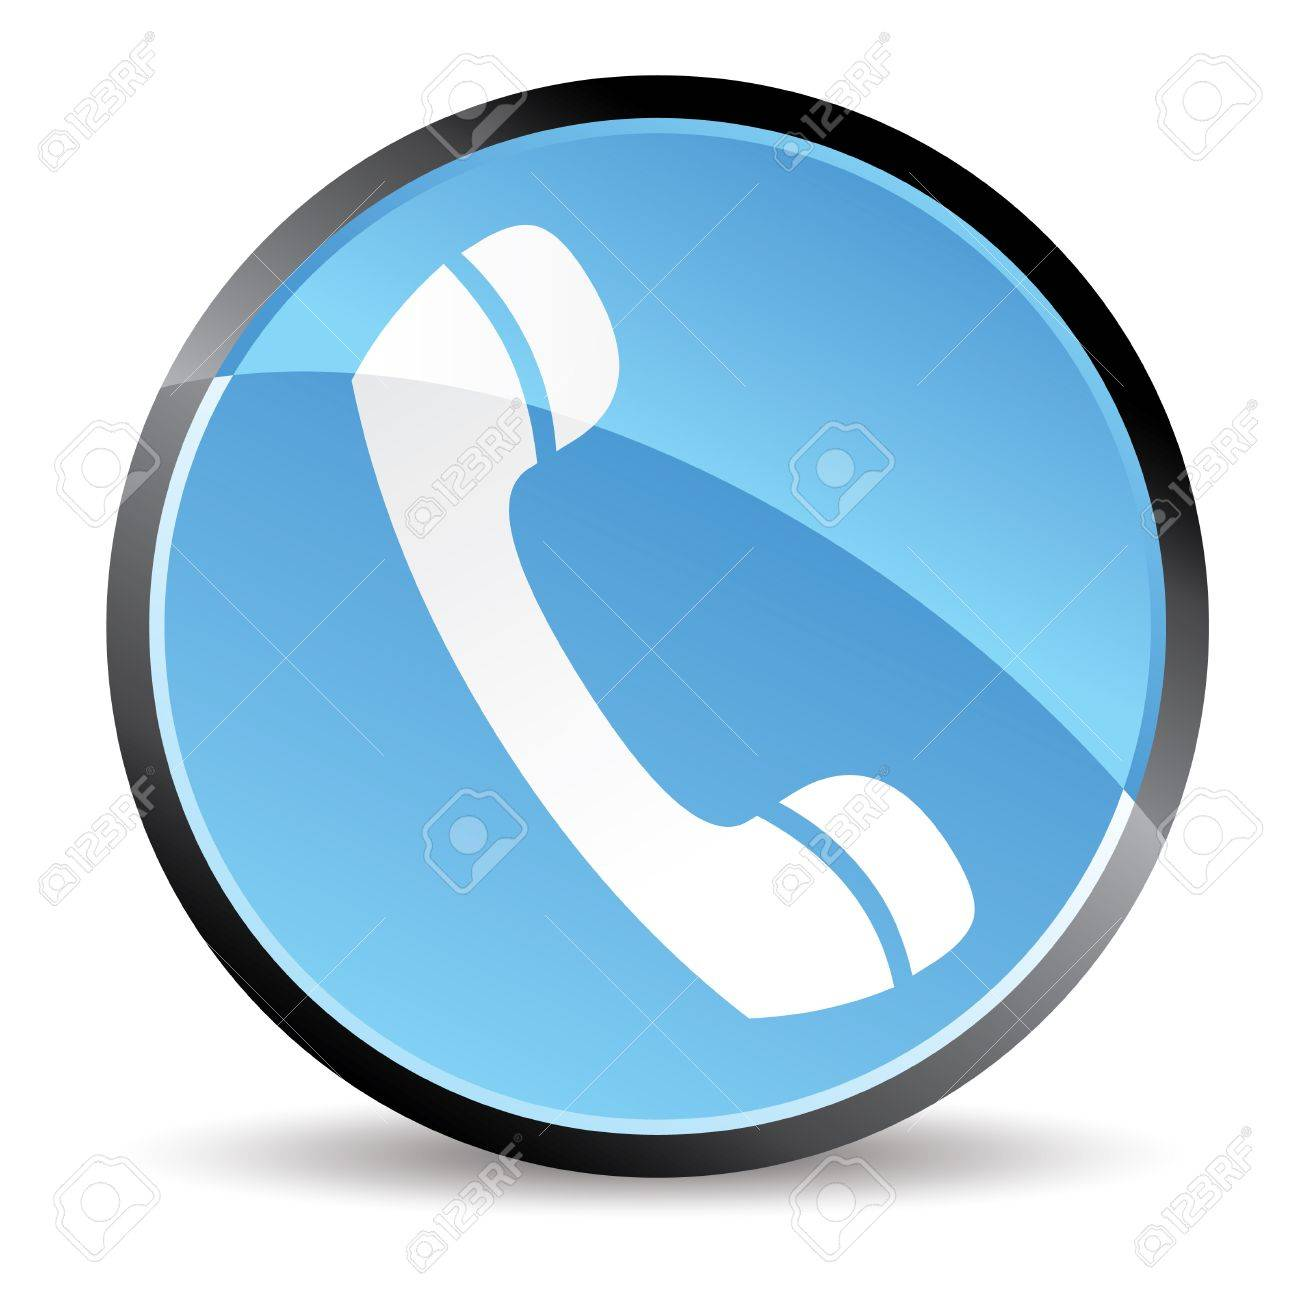 phone icon in blue tones vector Stock Vector - 5458020